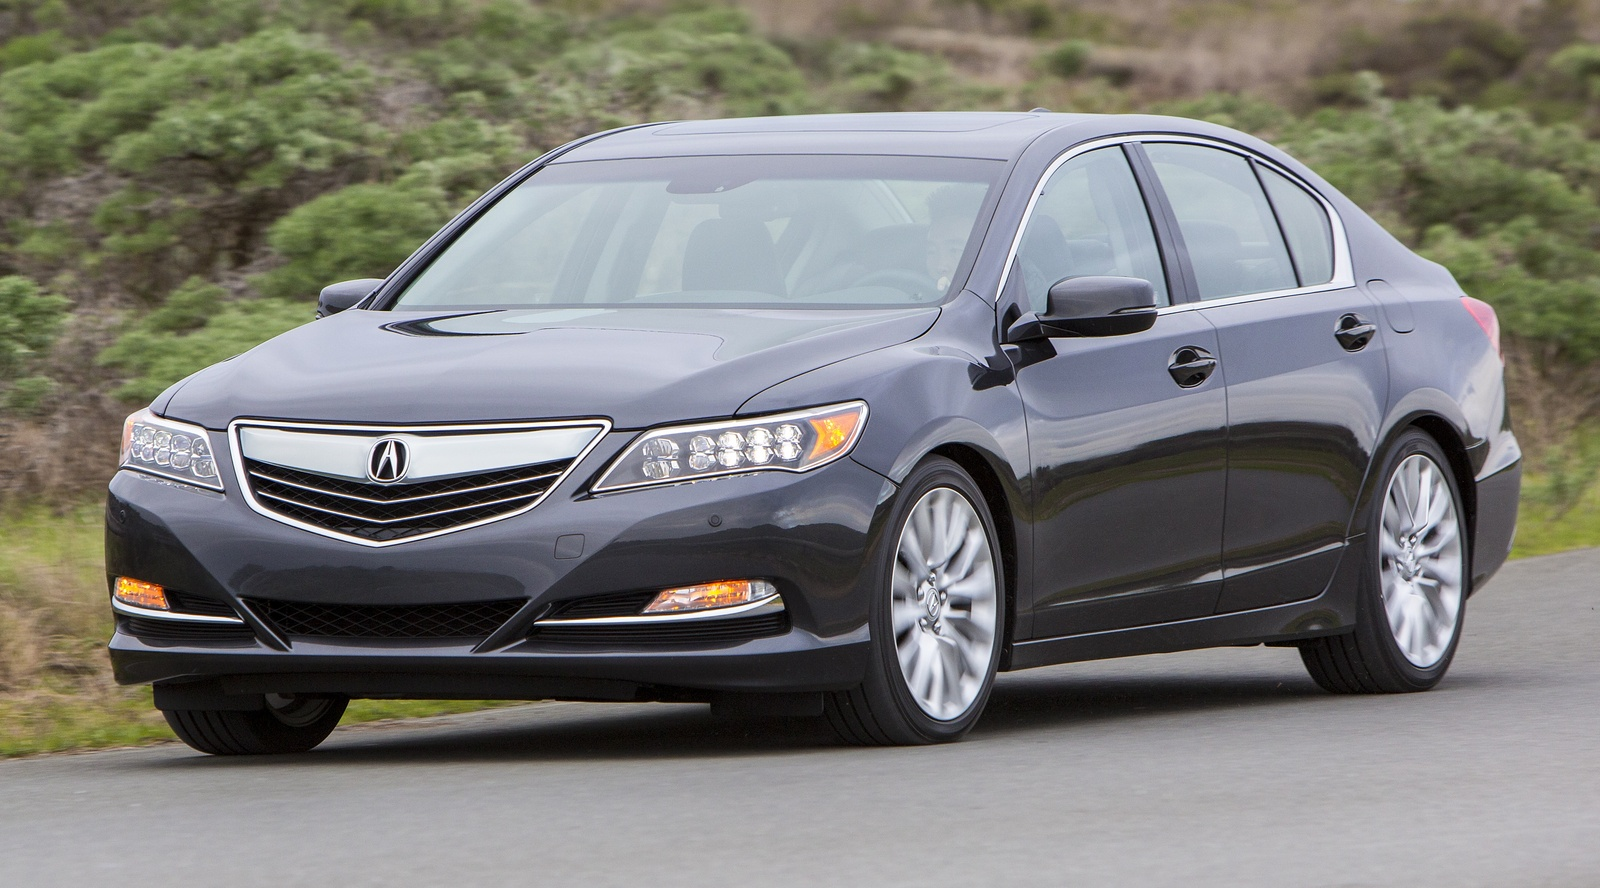 2016 acura rlx review cargurus. Black Bedroom Furniture Sets. Home Design Ideas